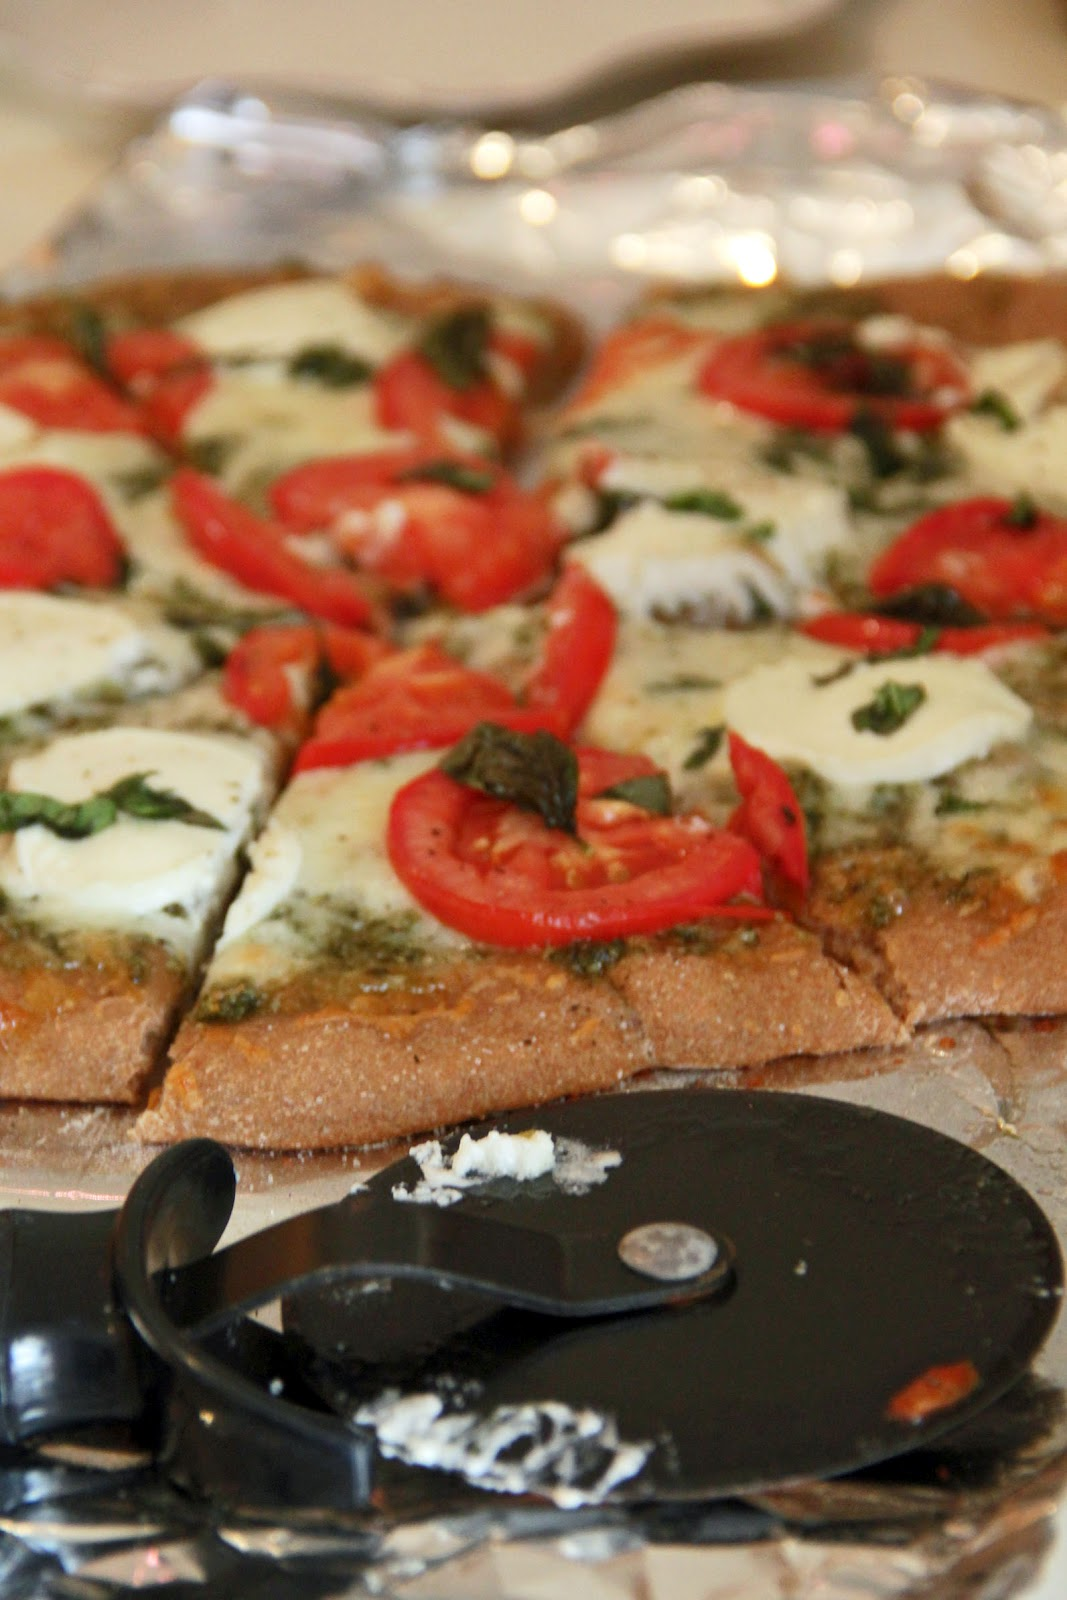 Mr. and Mrs. Pear: Homemade tomato, basil, and goat cheese ...